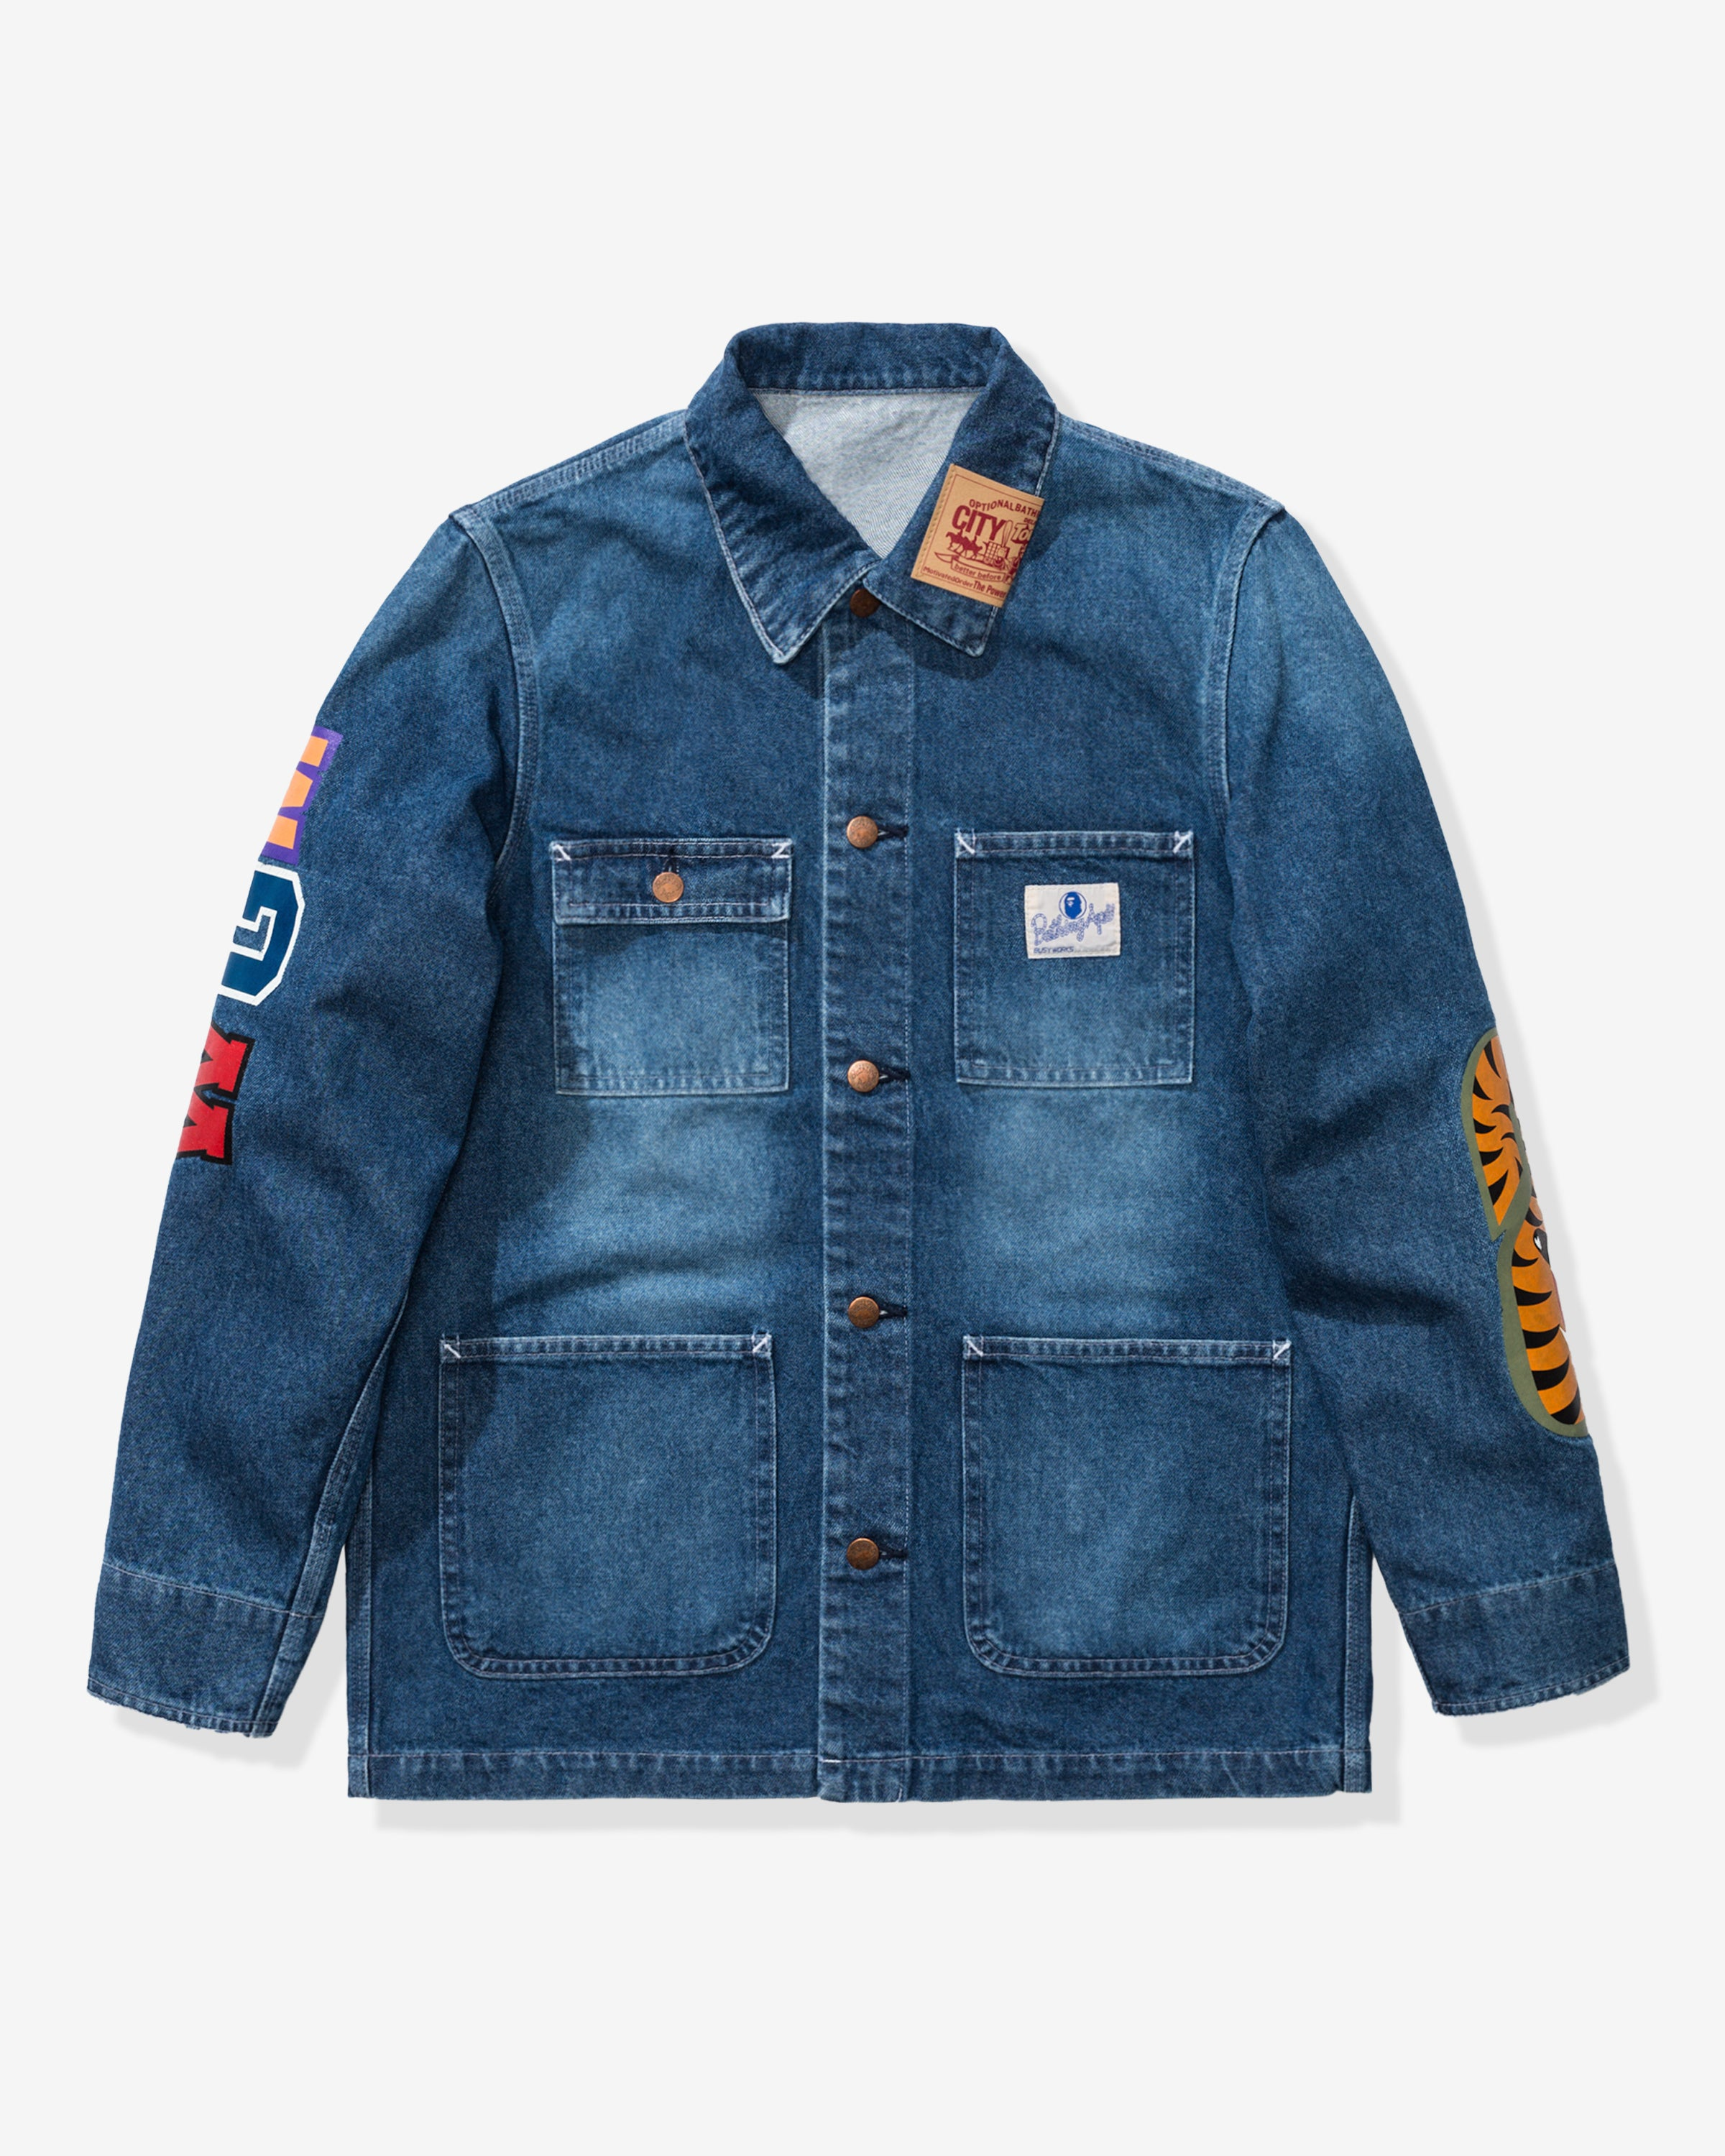 BAPE SHARK DENIM COVERALL JACKET - INDIGO